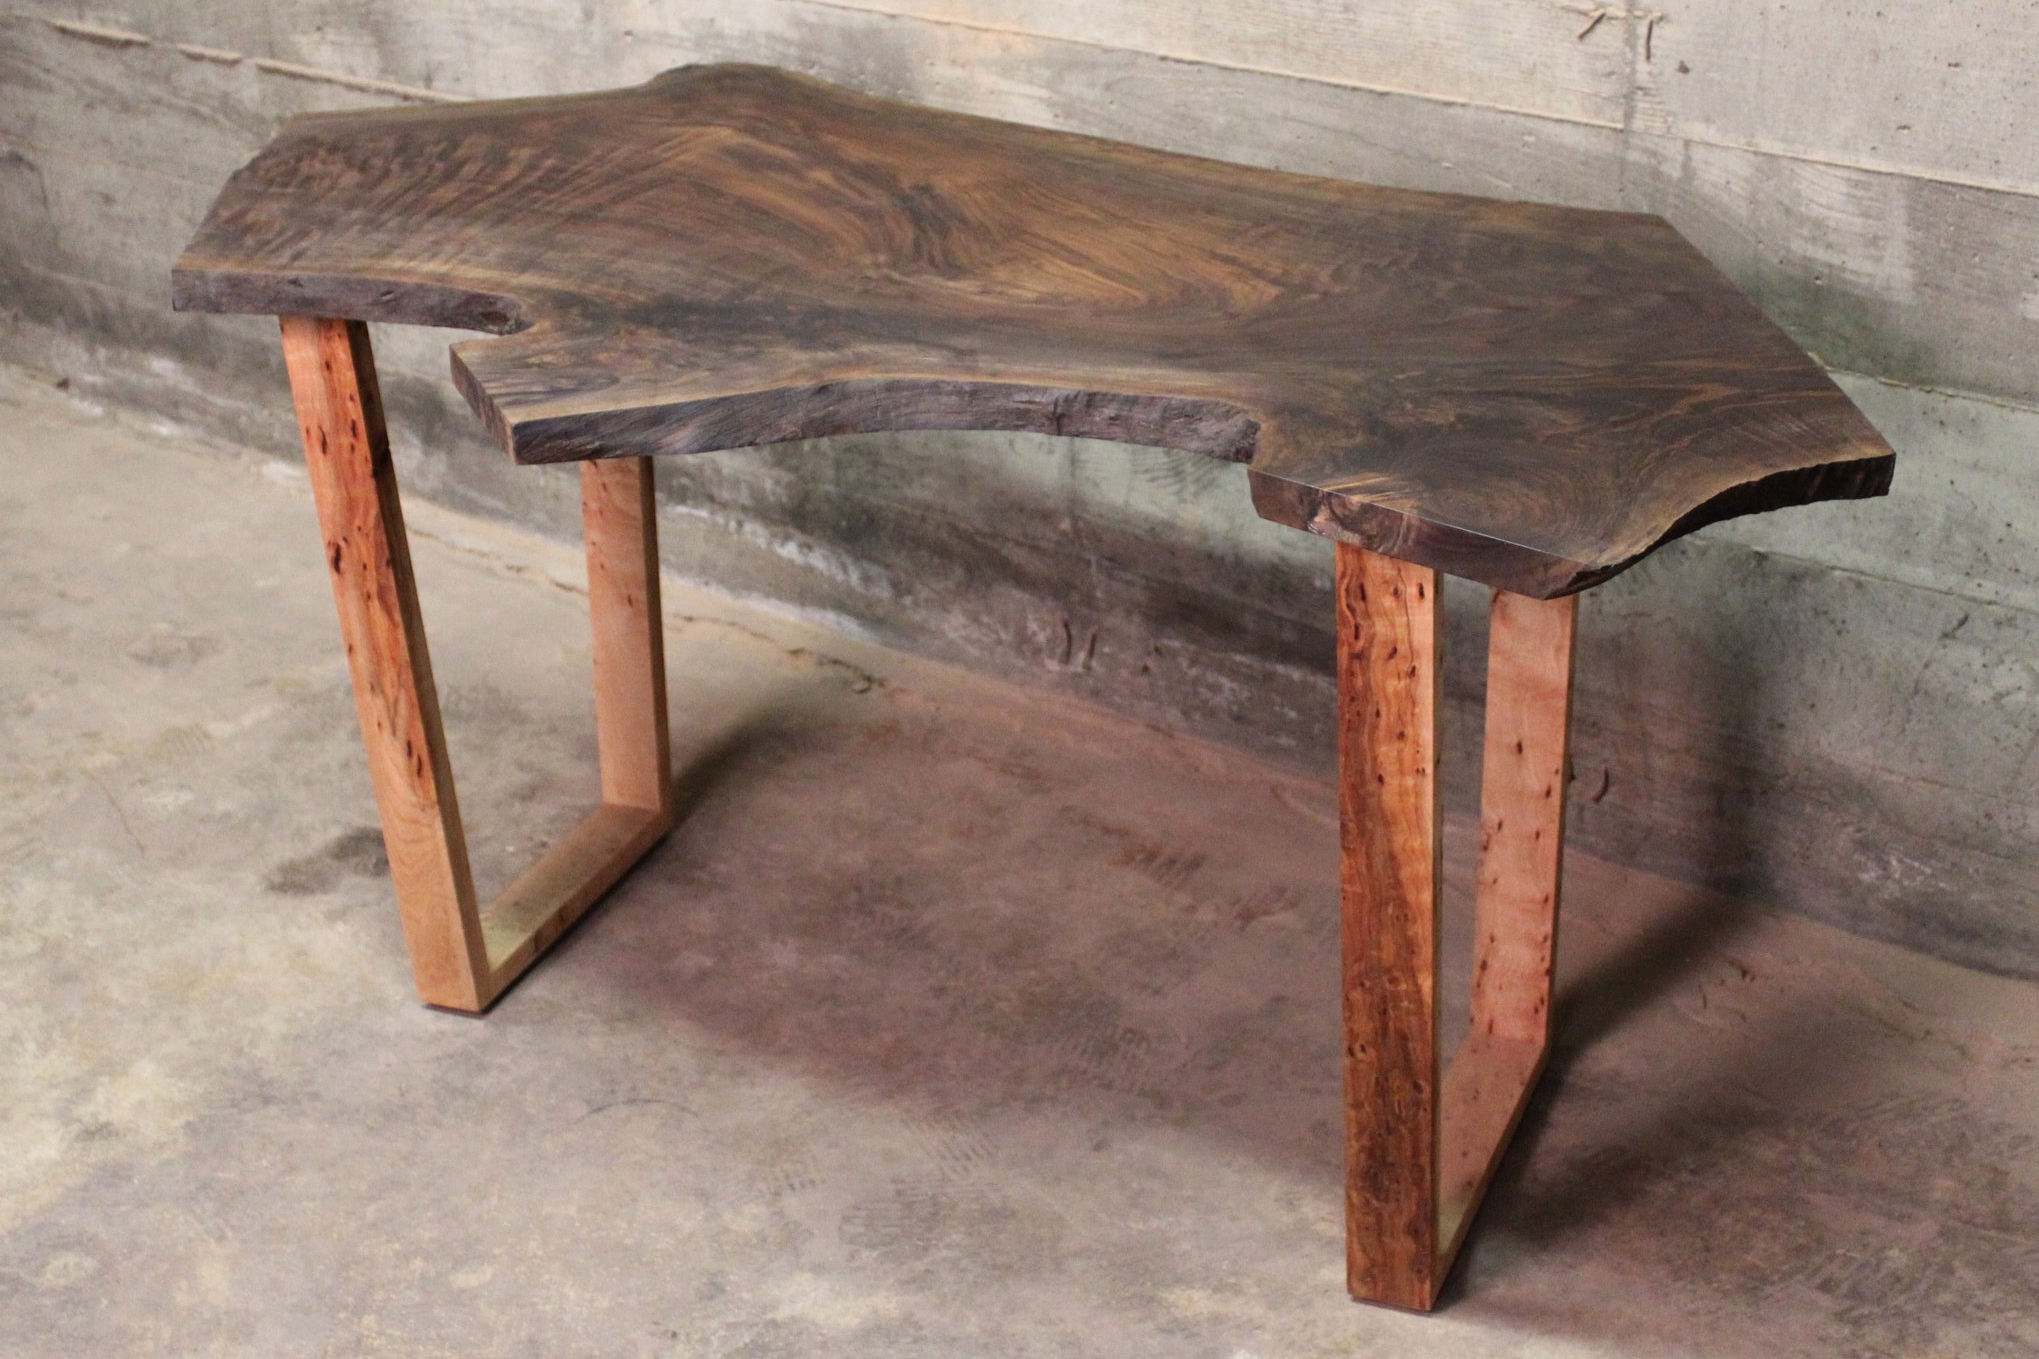 Tall Walnut Table - A tall reclaimed Walnut table with a modern Maple base. Measurements are 53